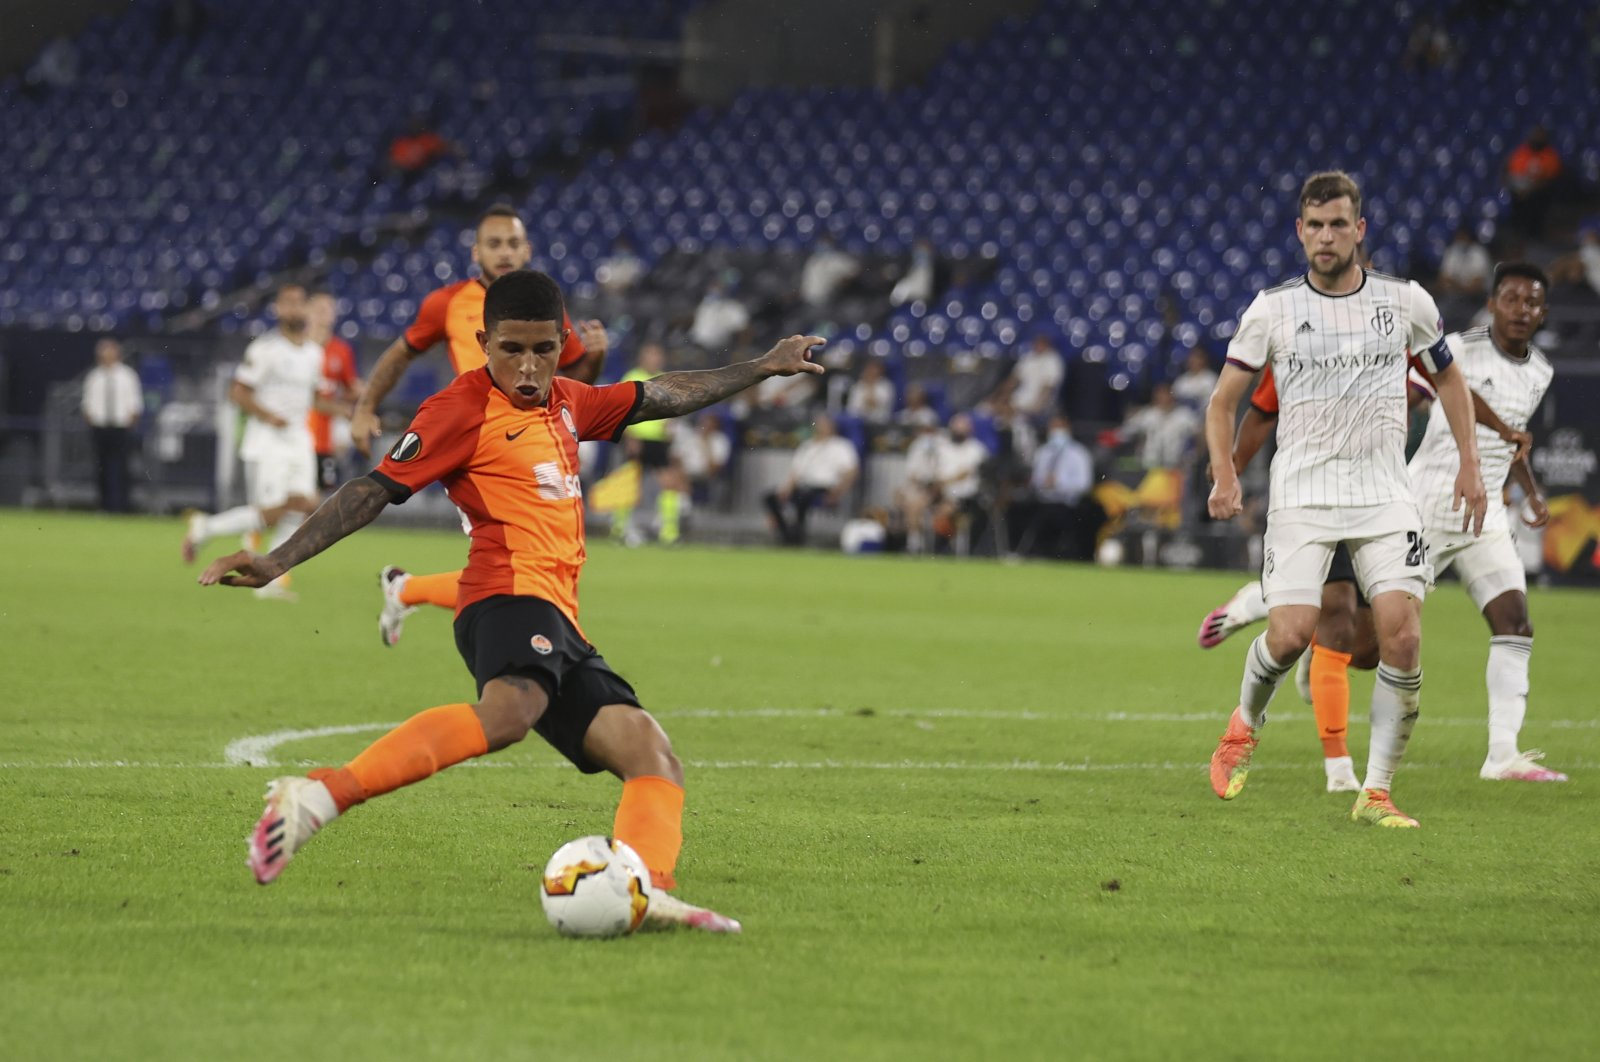 Dodo of Shakhtar (L) scores the 4-0 goal during the UEFA Europa League quarterfinal match against FC Basel, in Gelsenkirchen, Germany, Aug. 11, 2020. (EPA Photo)